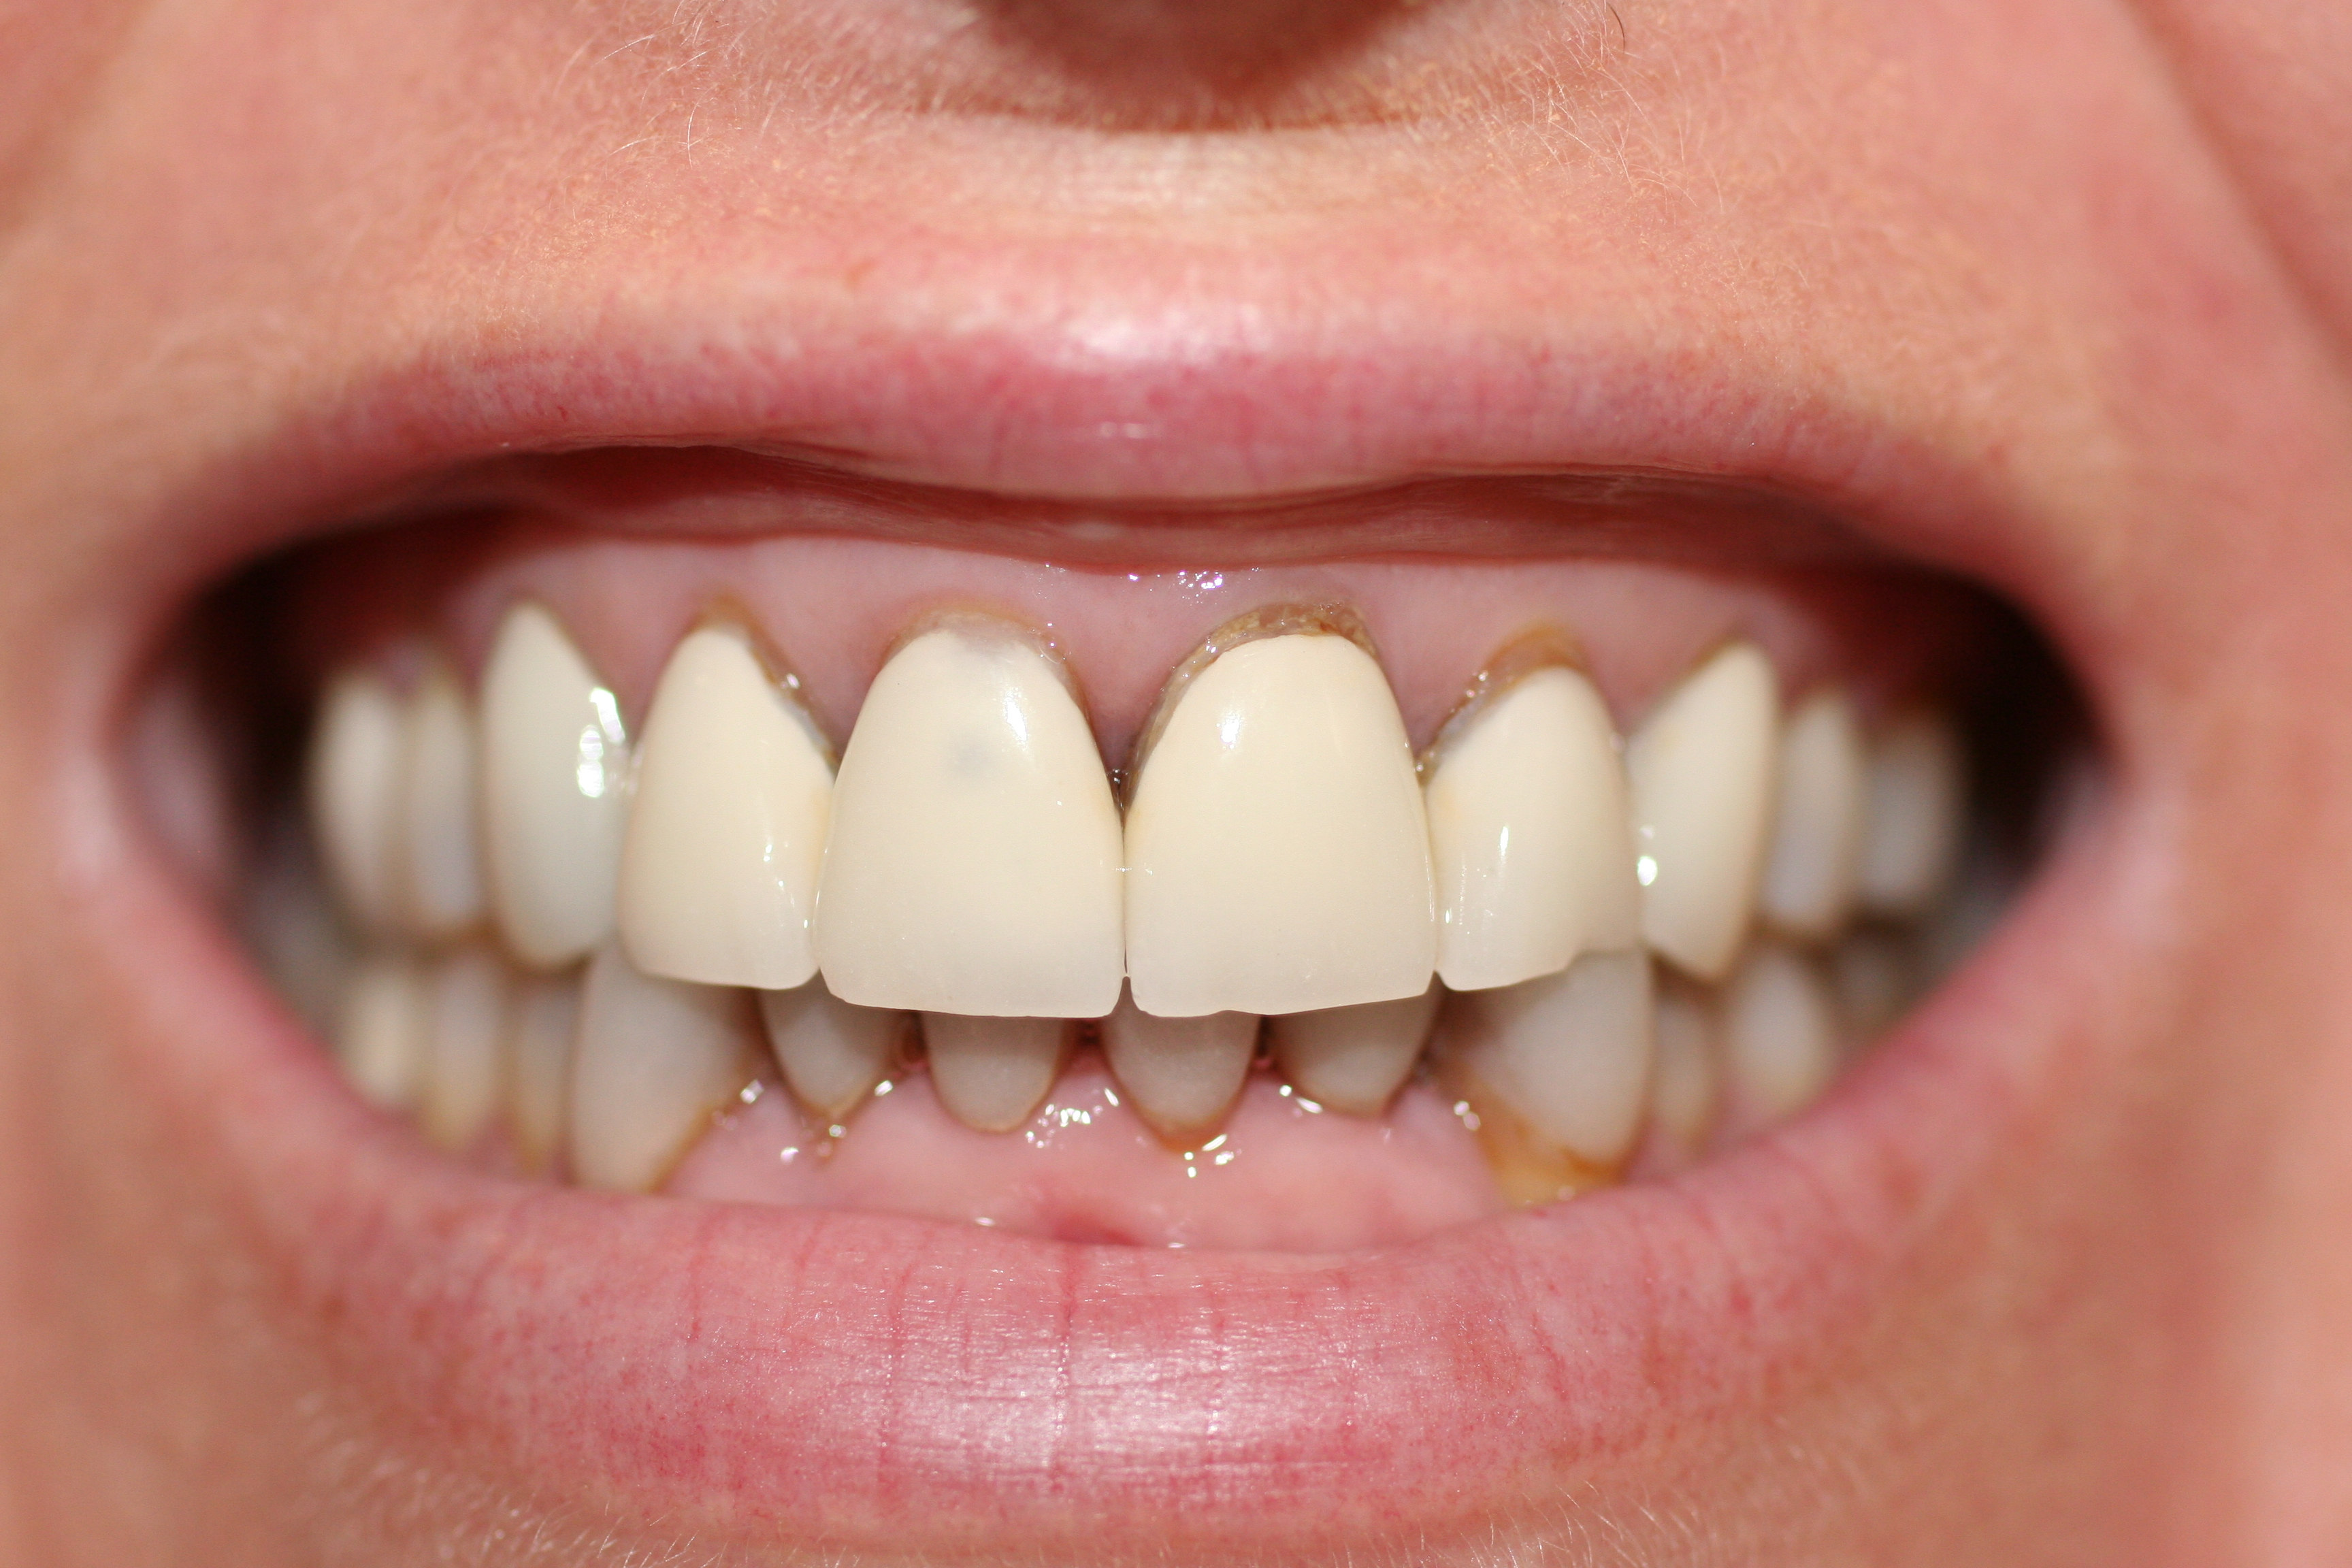 Veneers lumineers pearl cosmetic dds a1 old veneers solutioingenieria Image collections